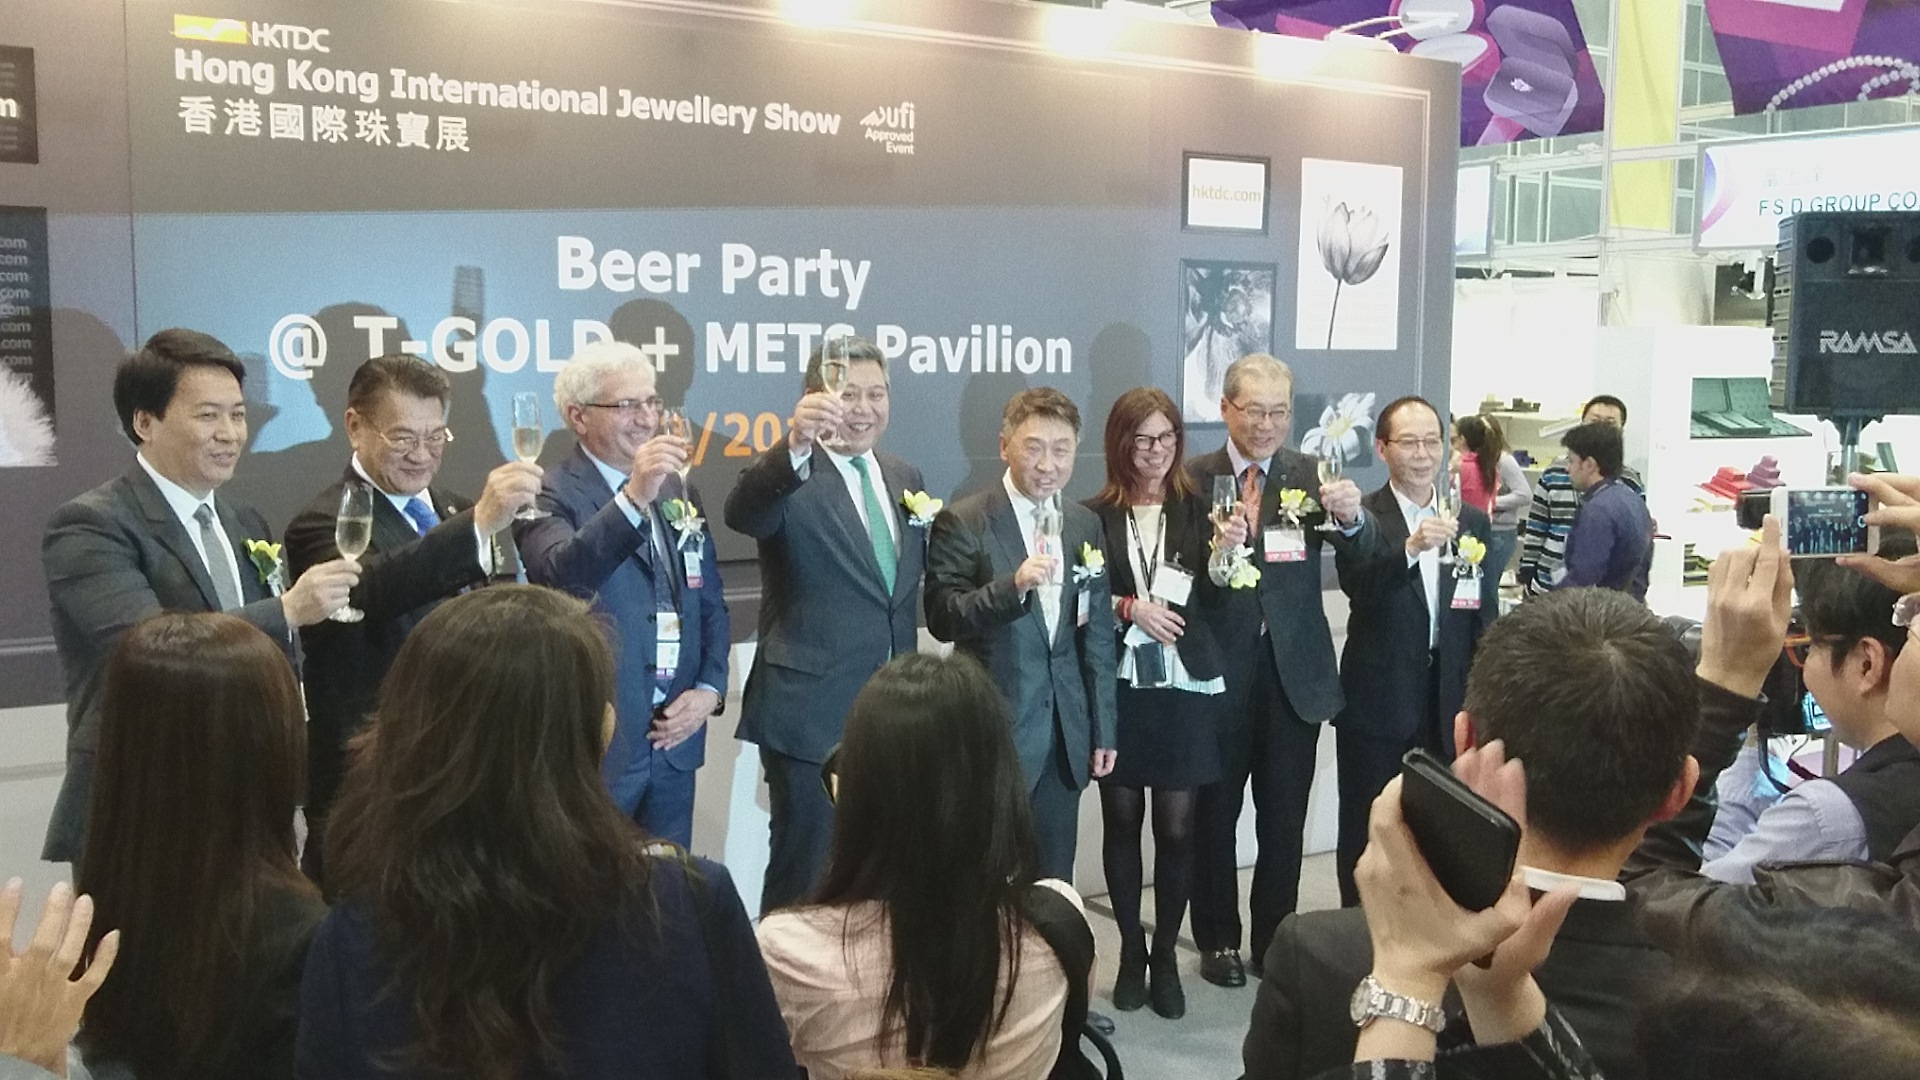 Successful launch of Asia's best jewel tech pavilion